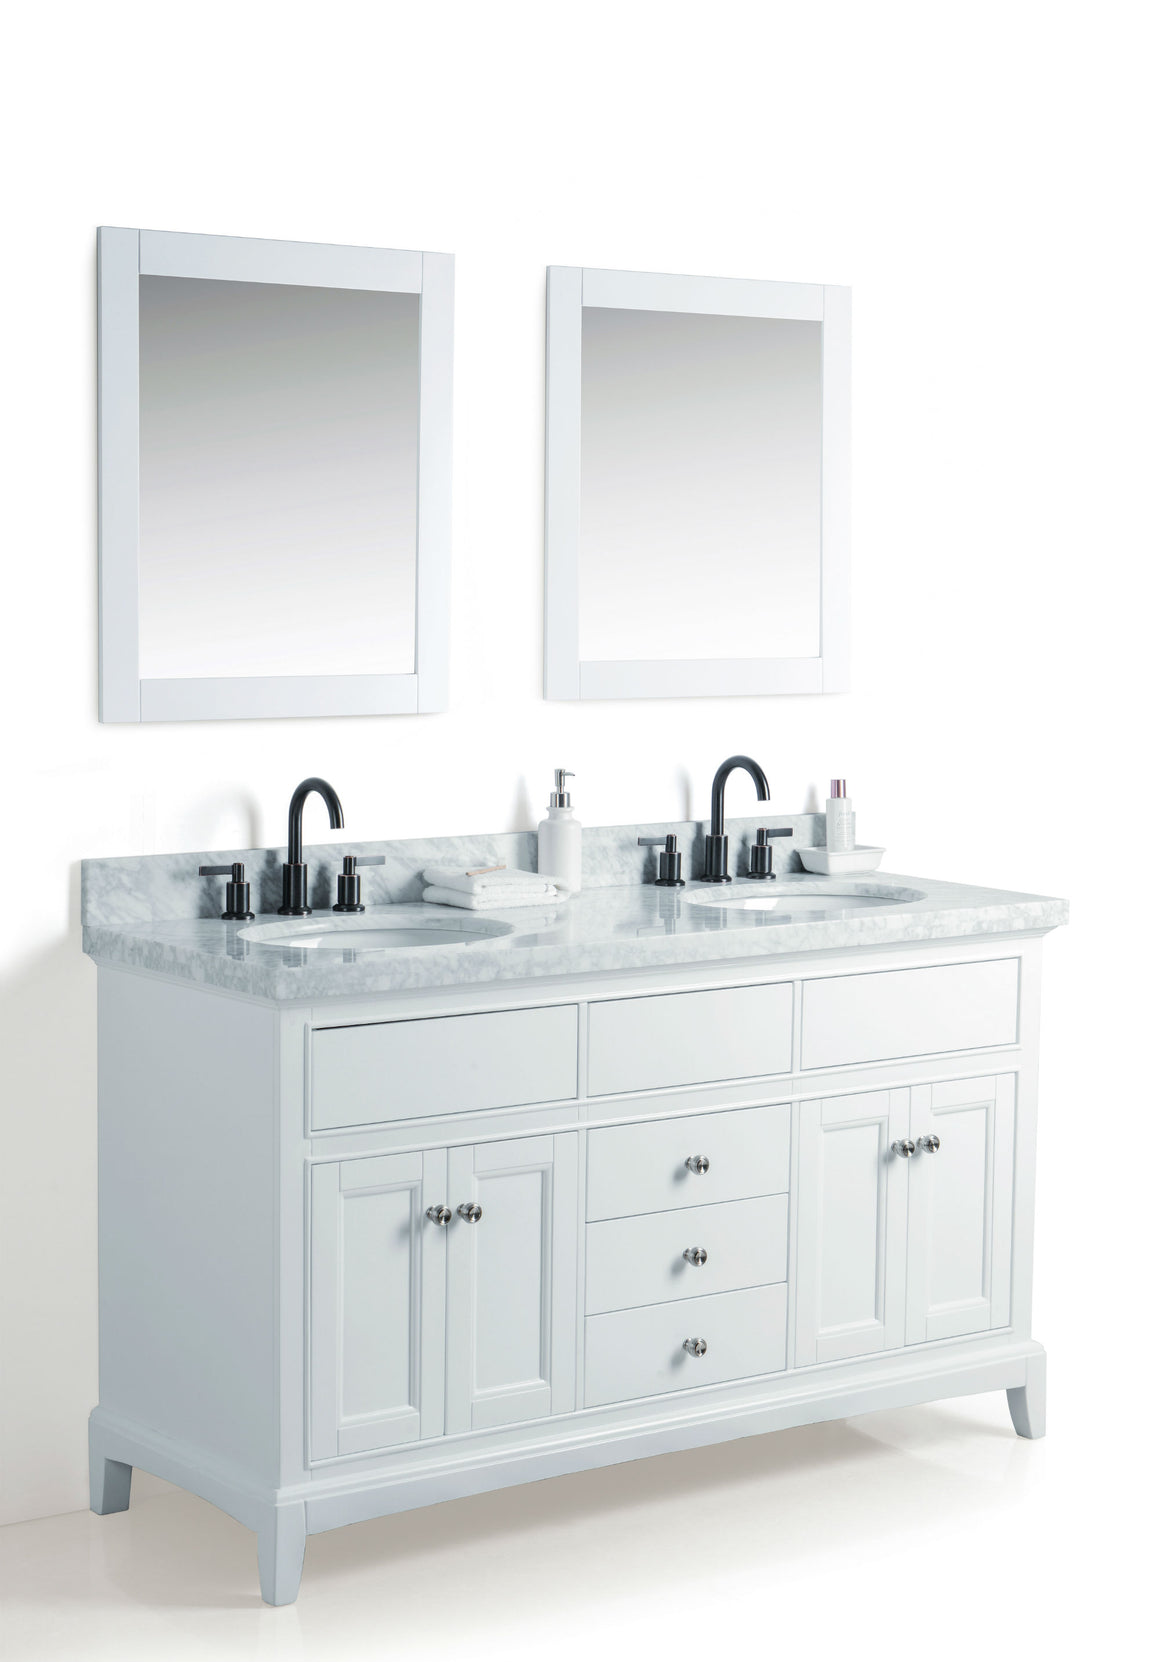 "60"" White Dual Sink Bathroom Vanity with Mirrors, Marble Top and Faucets"